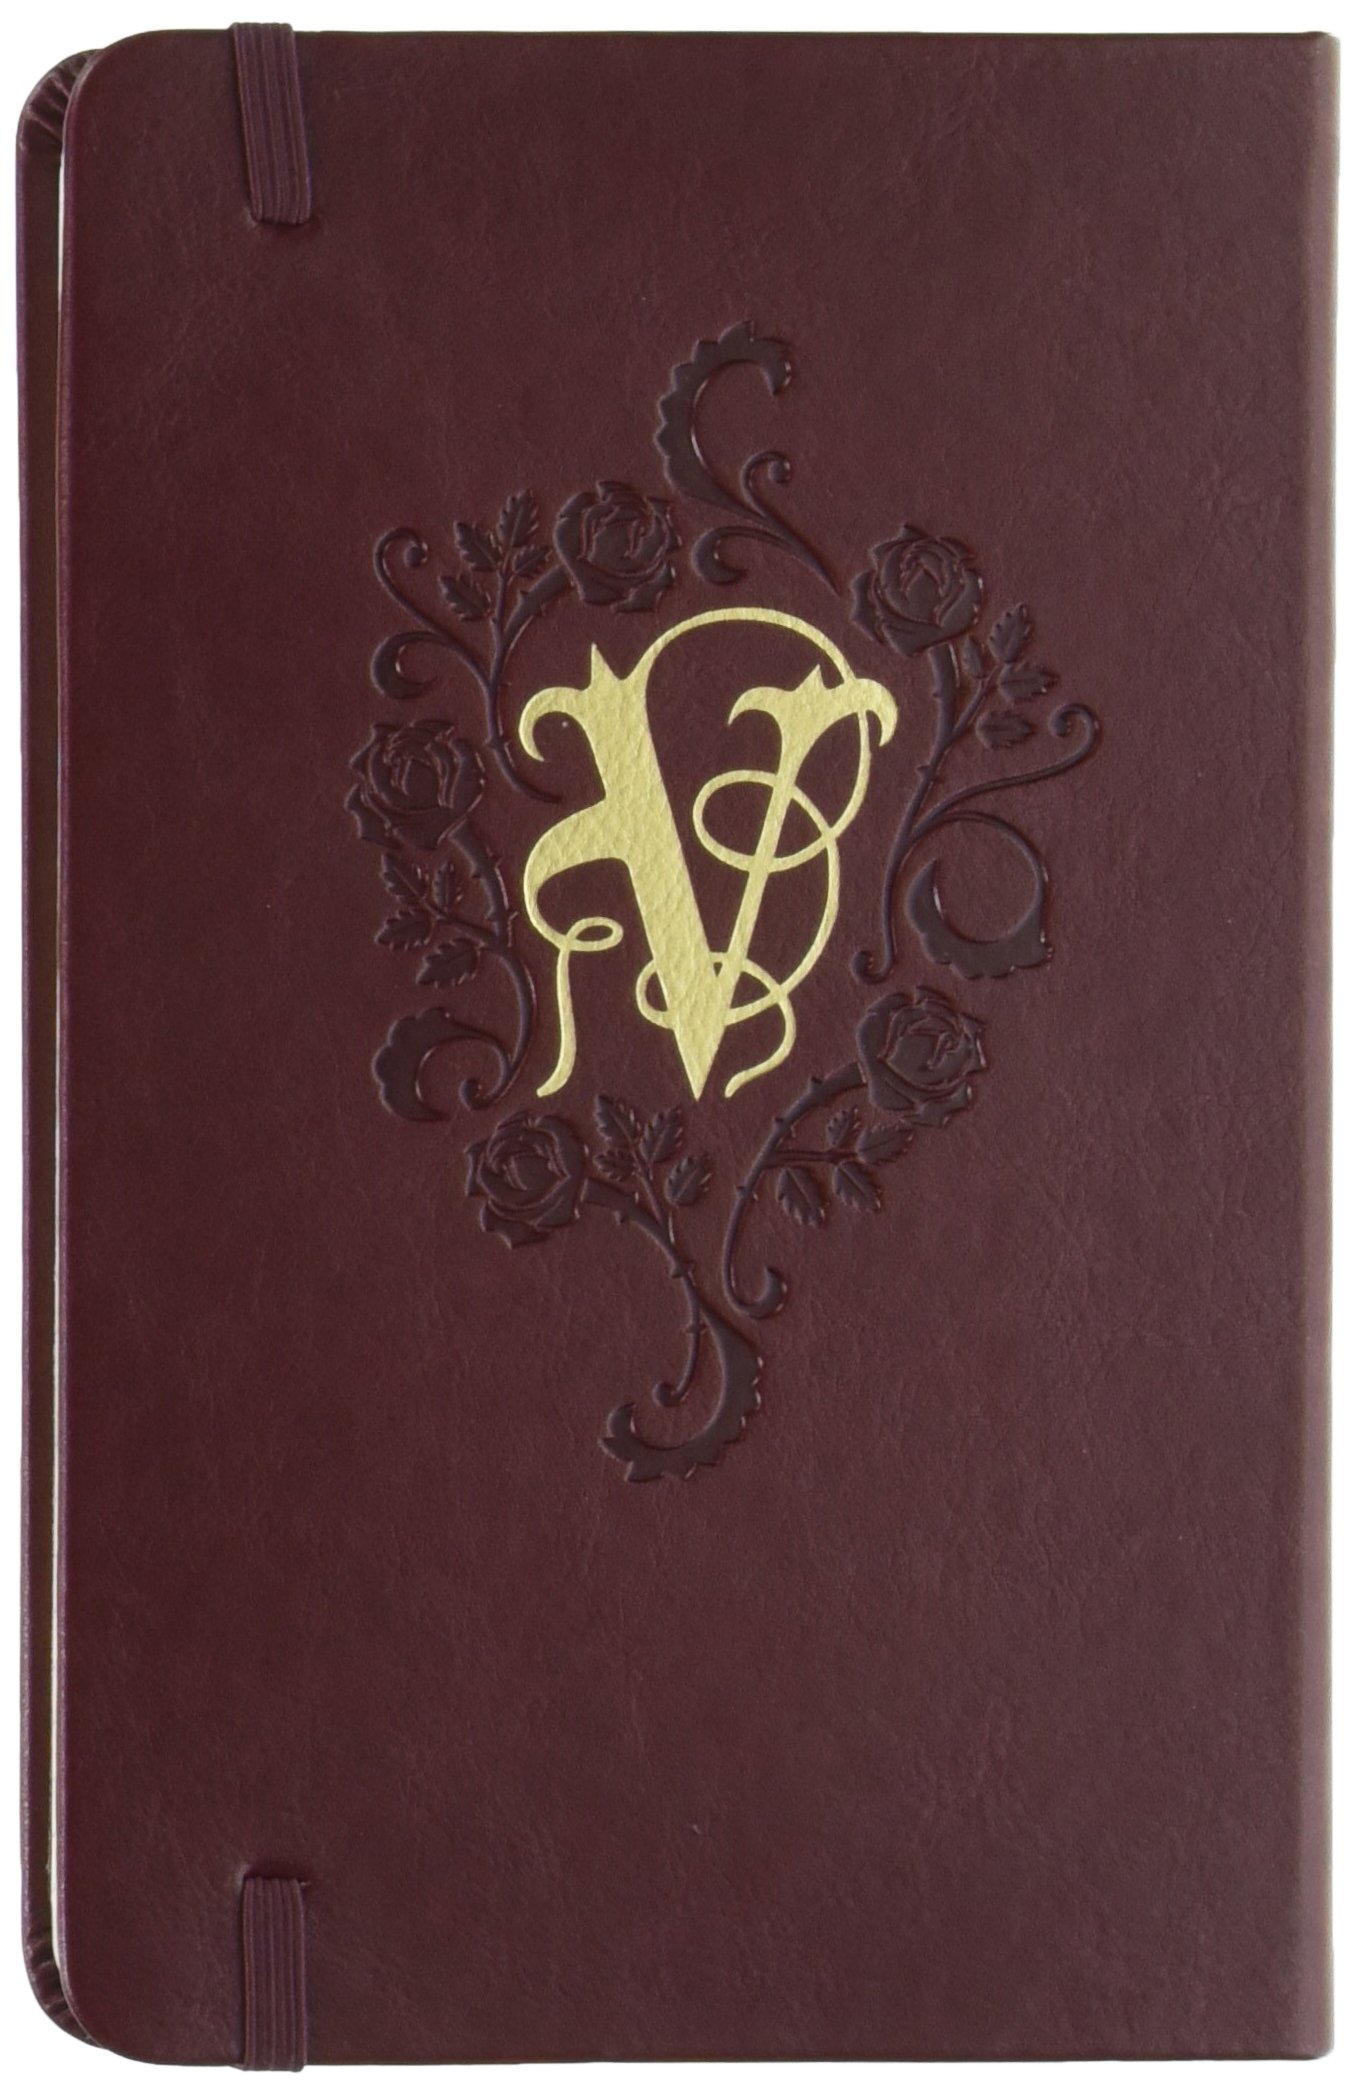 The Vampire Diaries Hardcover Ruled Journal (Insights ...